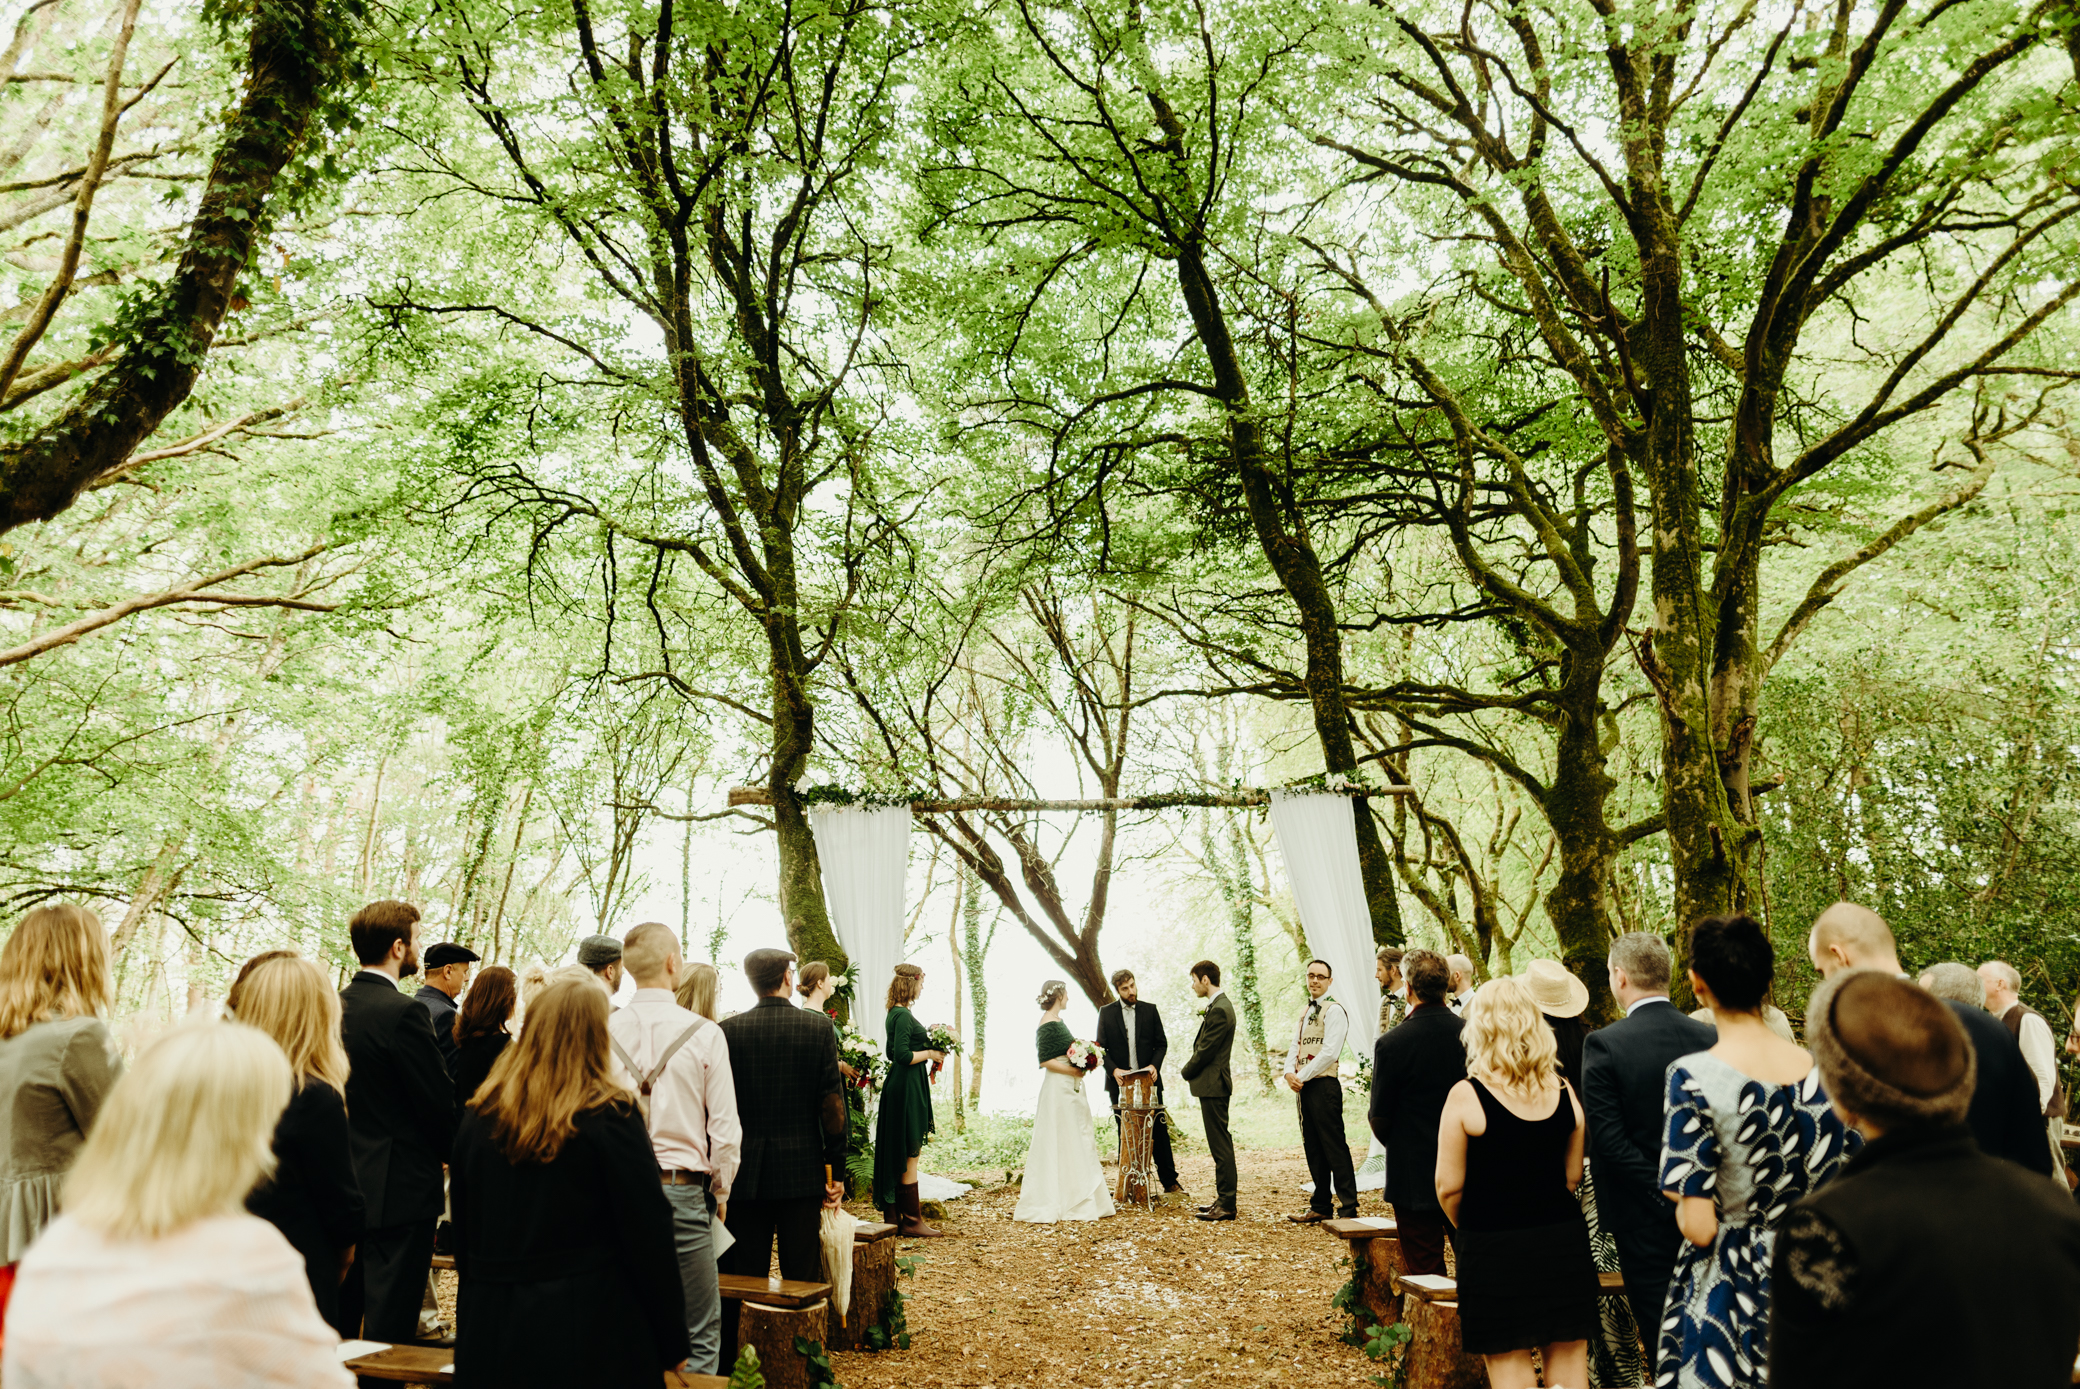 Alternative Wedding Ireland - Elopement photographer Ireland - Destination Photographer Europe-36.jpg